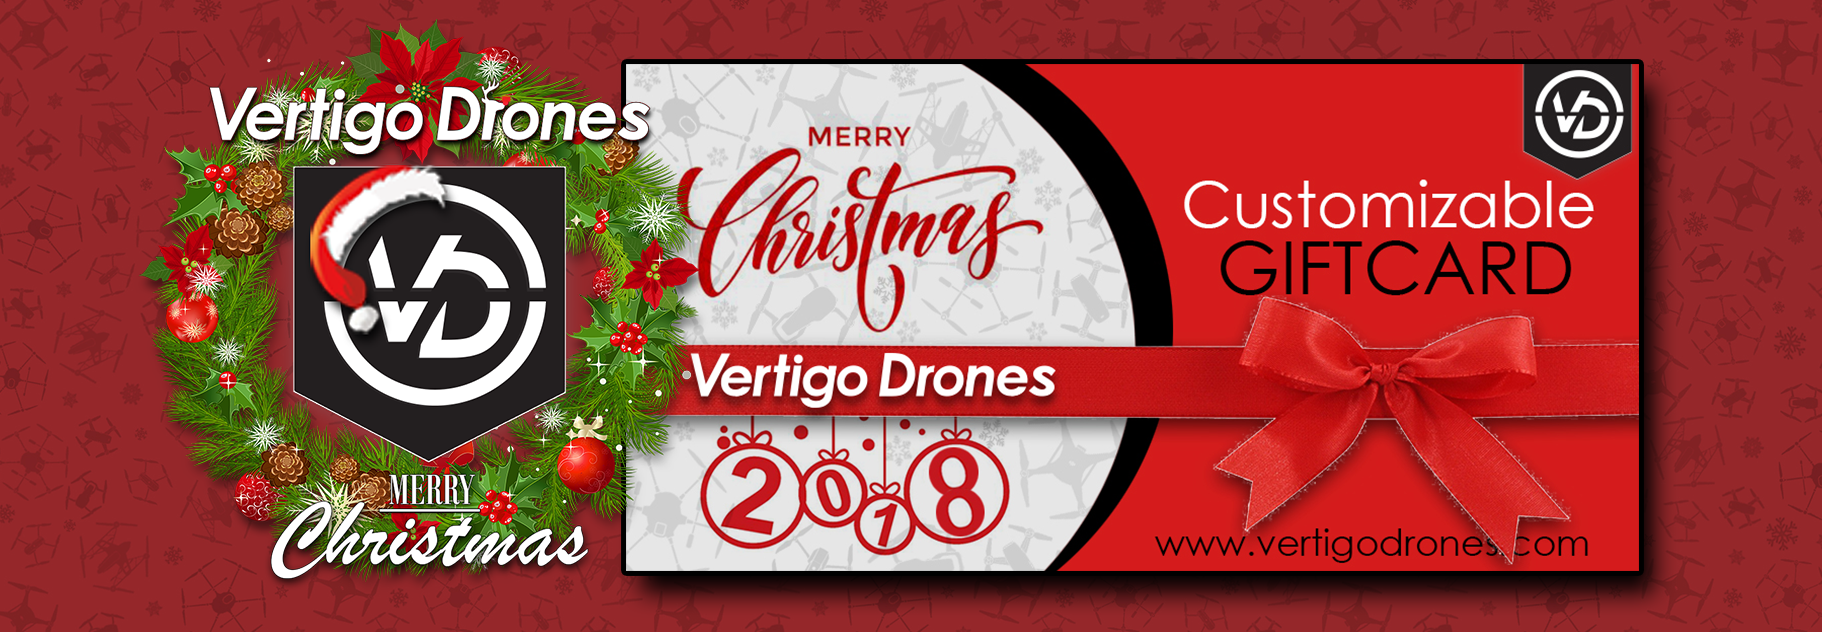 Vertigo Drones Customizable Gift Card